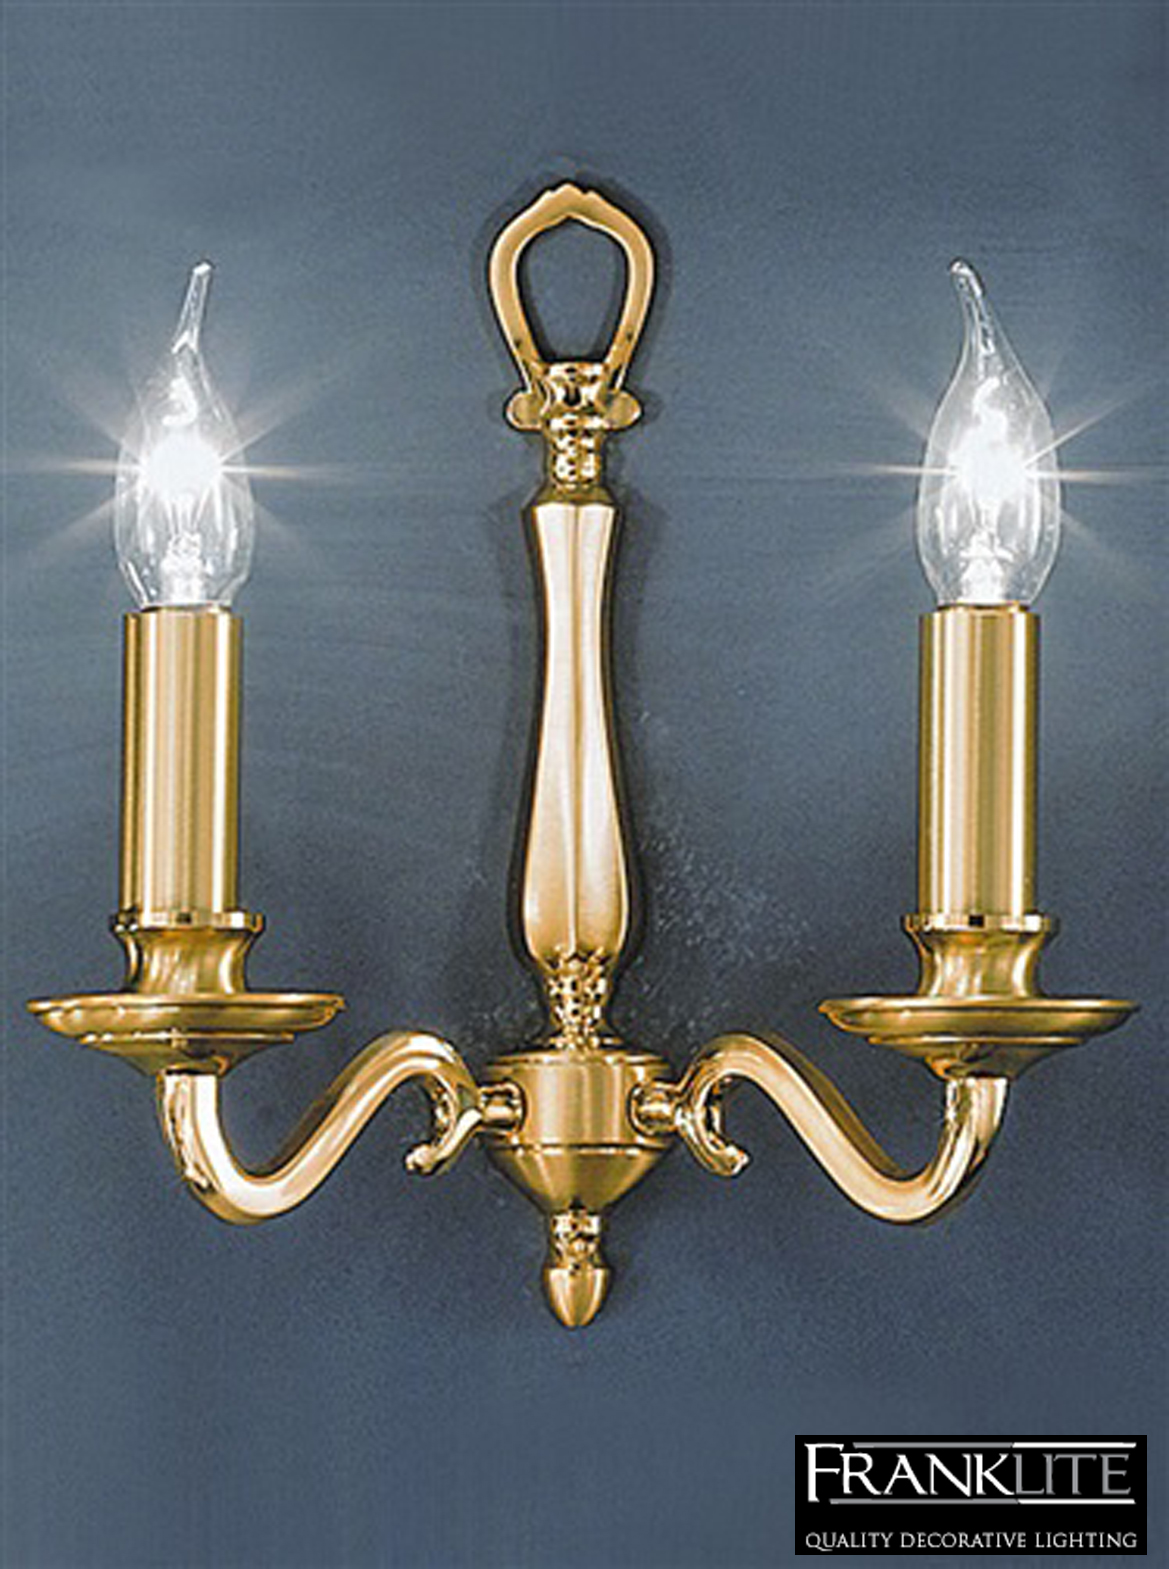 Franklite Cantabria Satin & Polished Brass Finish Twin Wall Light - CO4642 from Easy Lighting